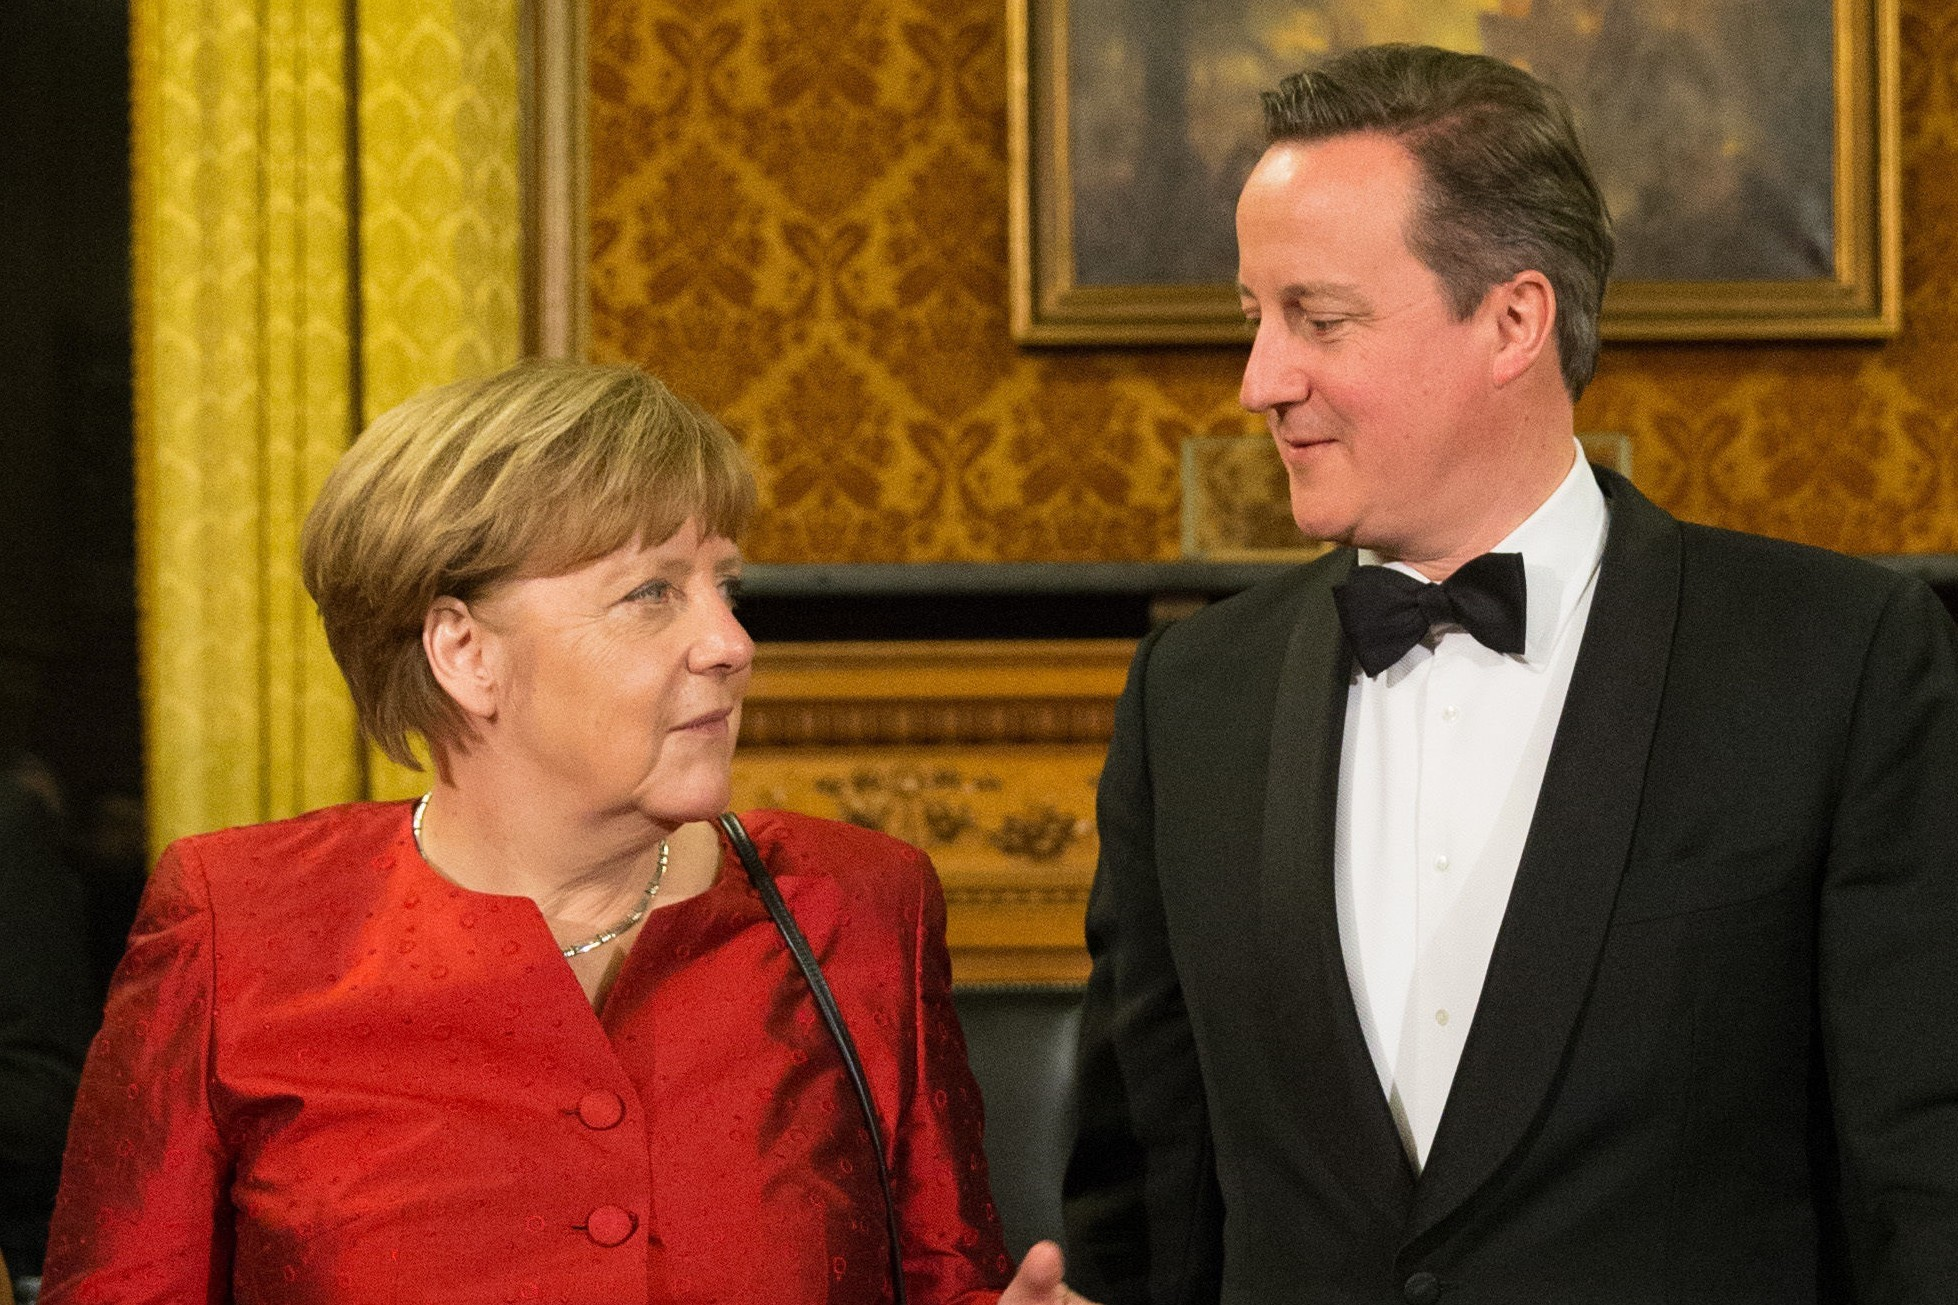 PM Cameron is in talks (Christian Charisius/dpa via AP)